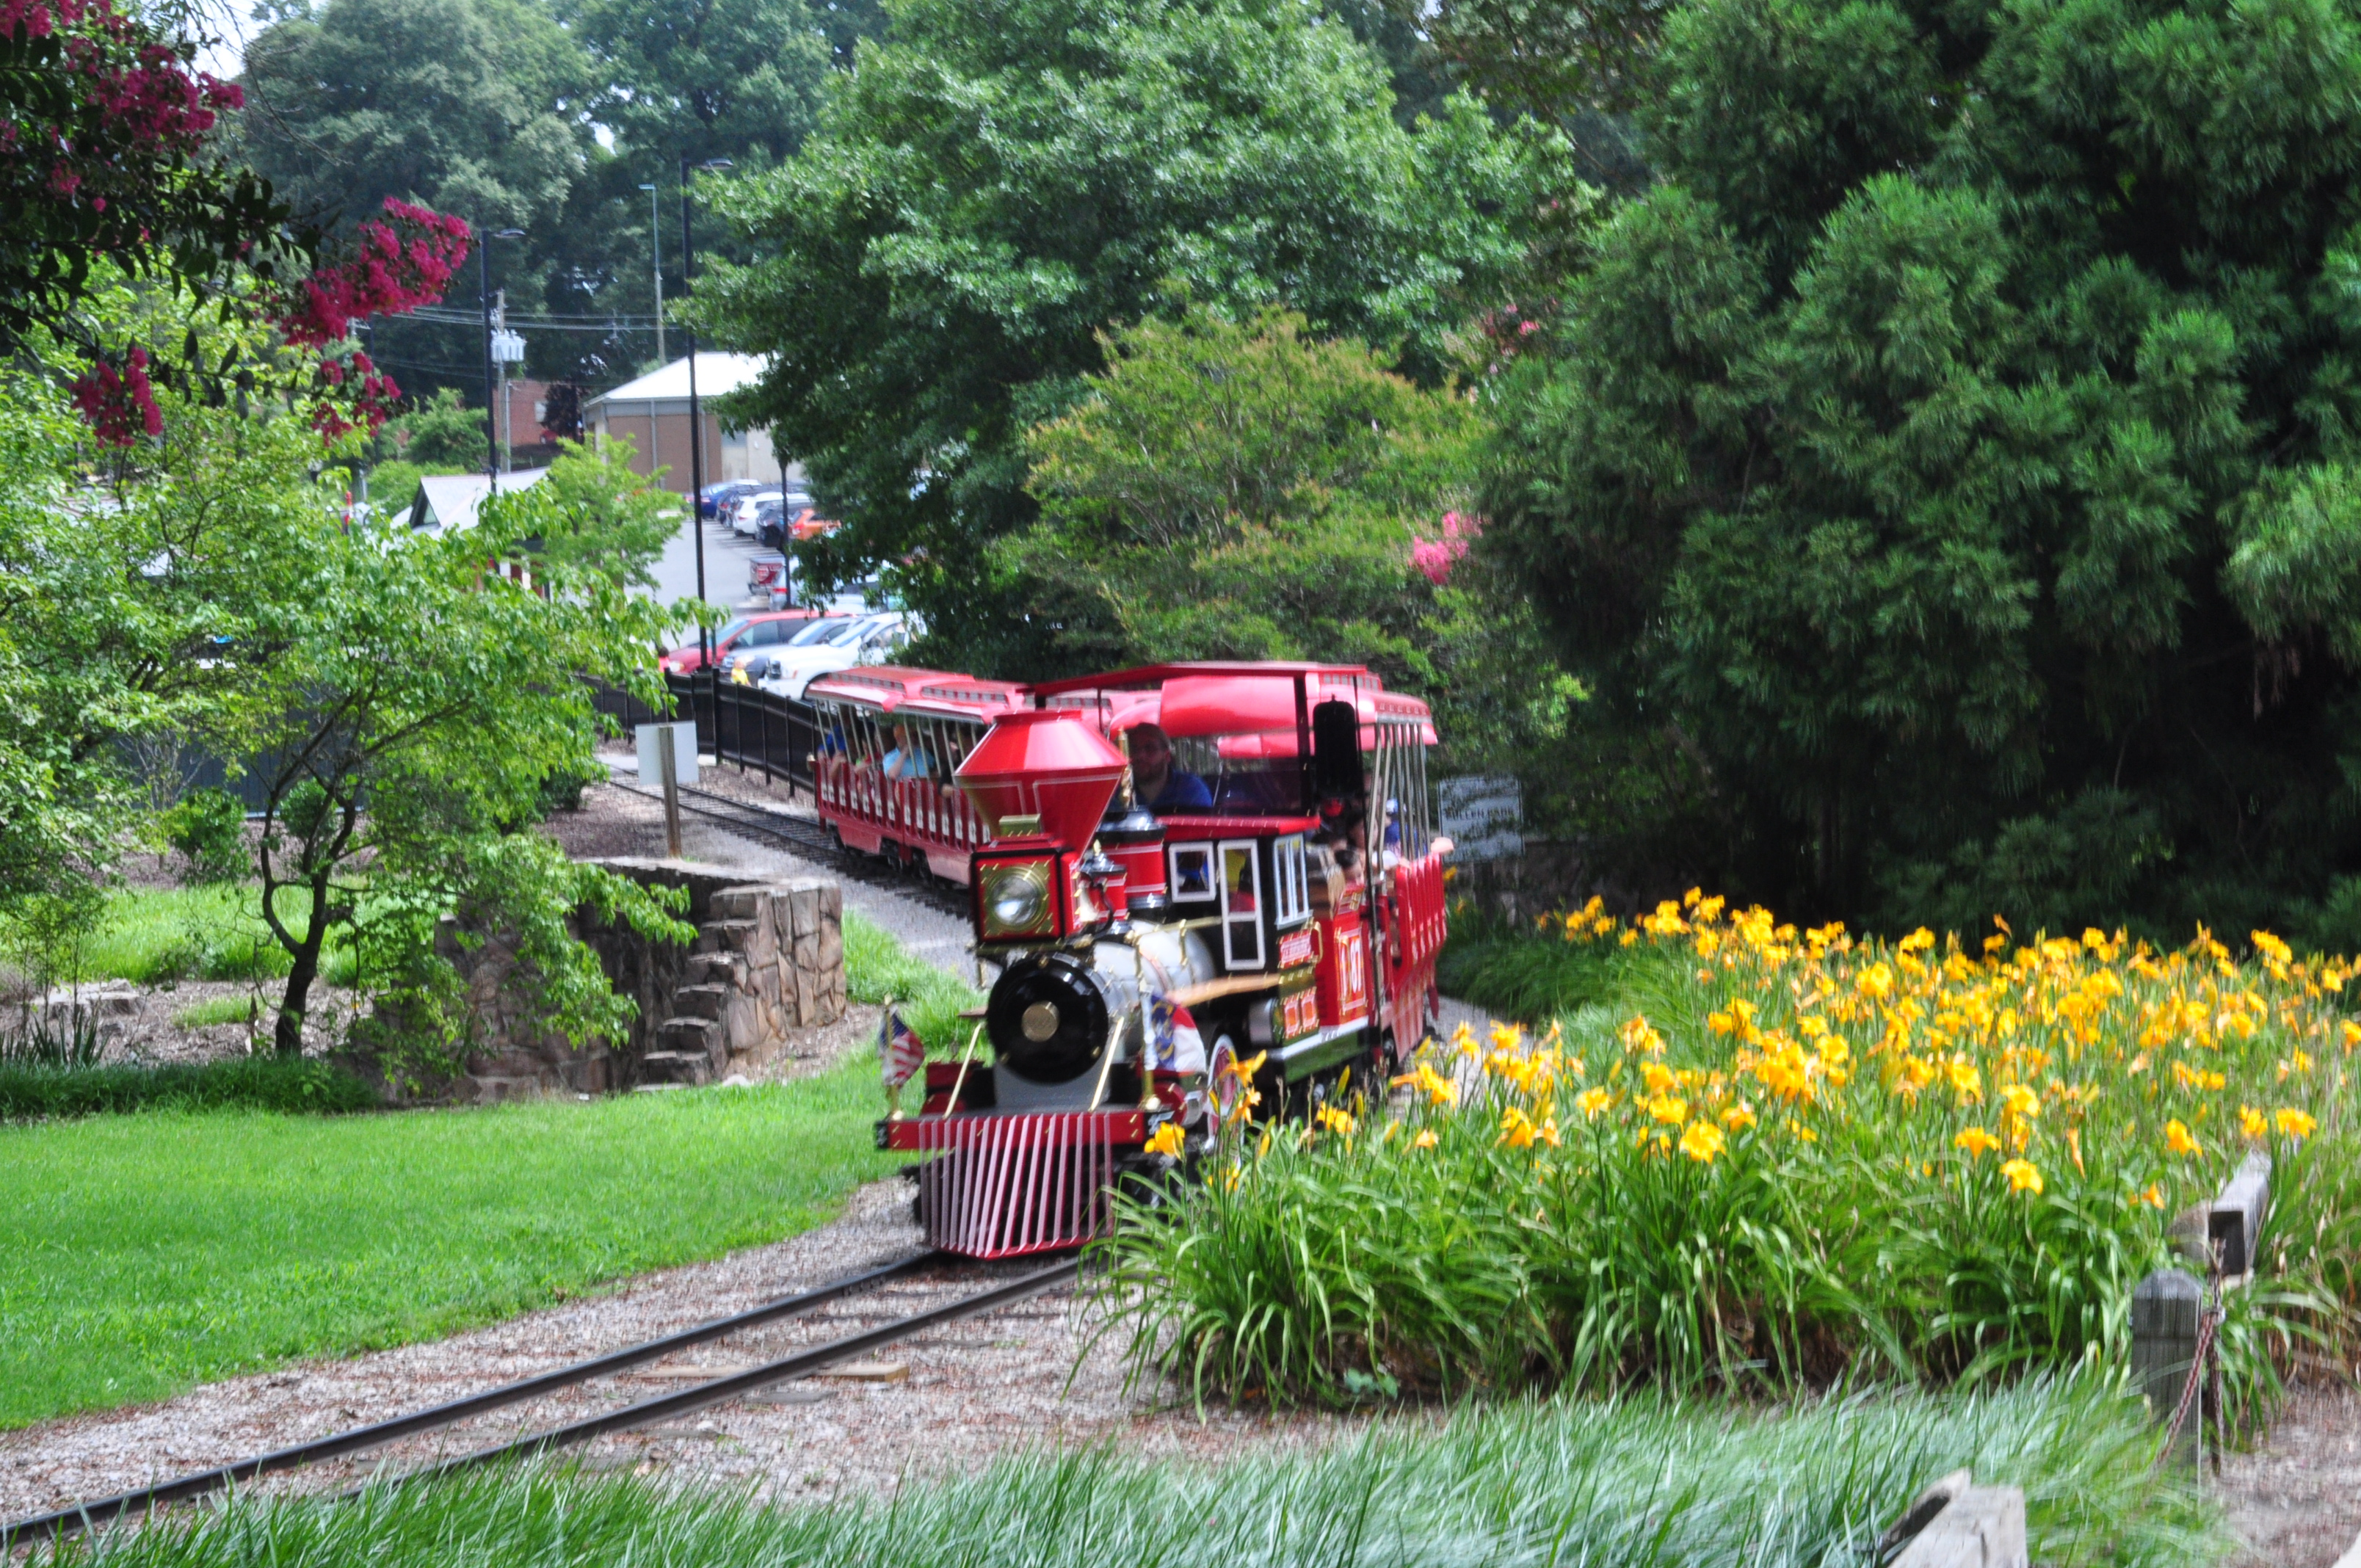 The miniature train of Pullen Park.